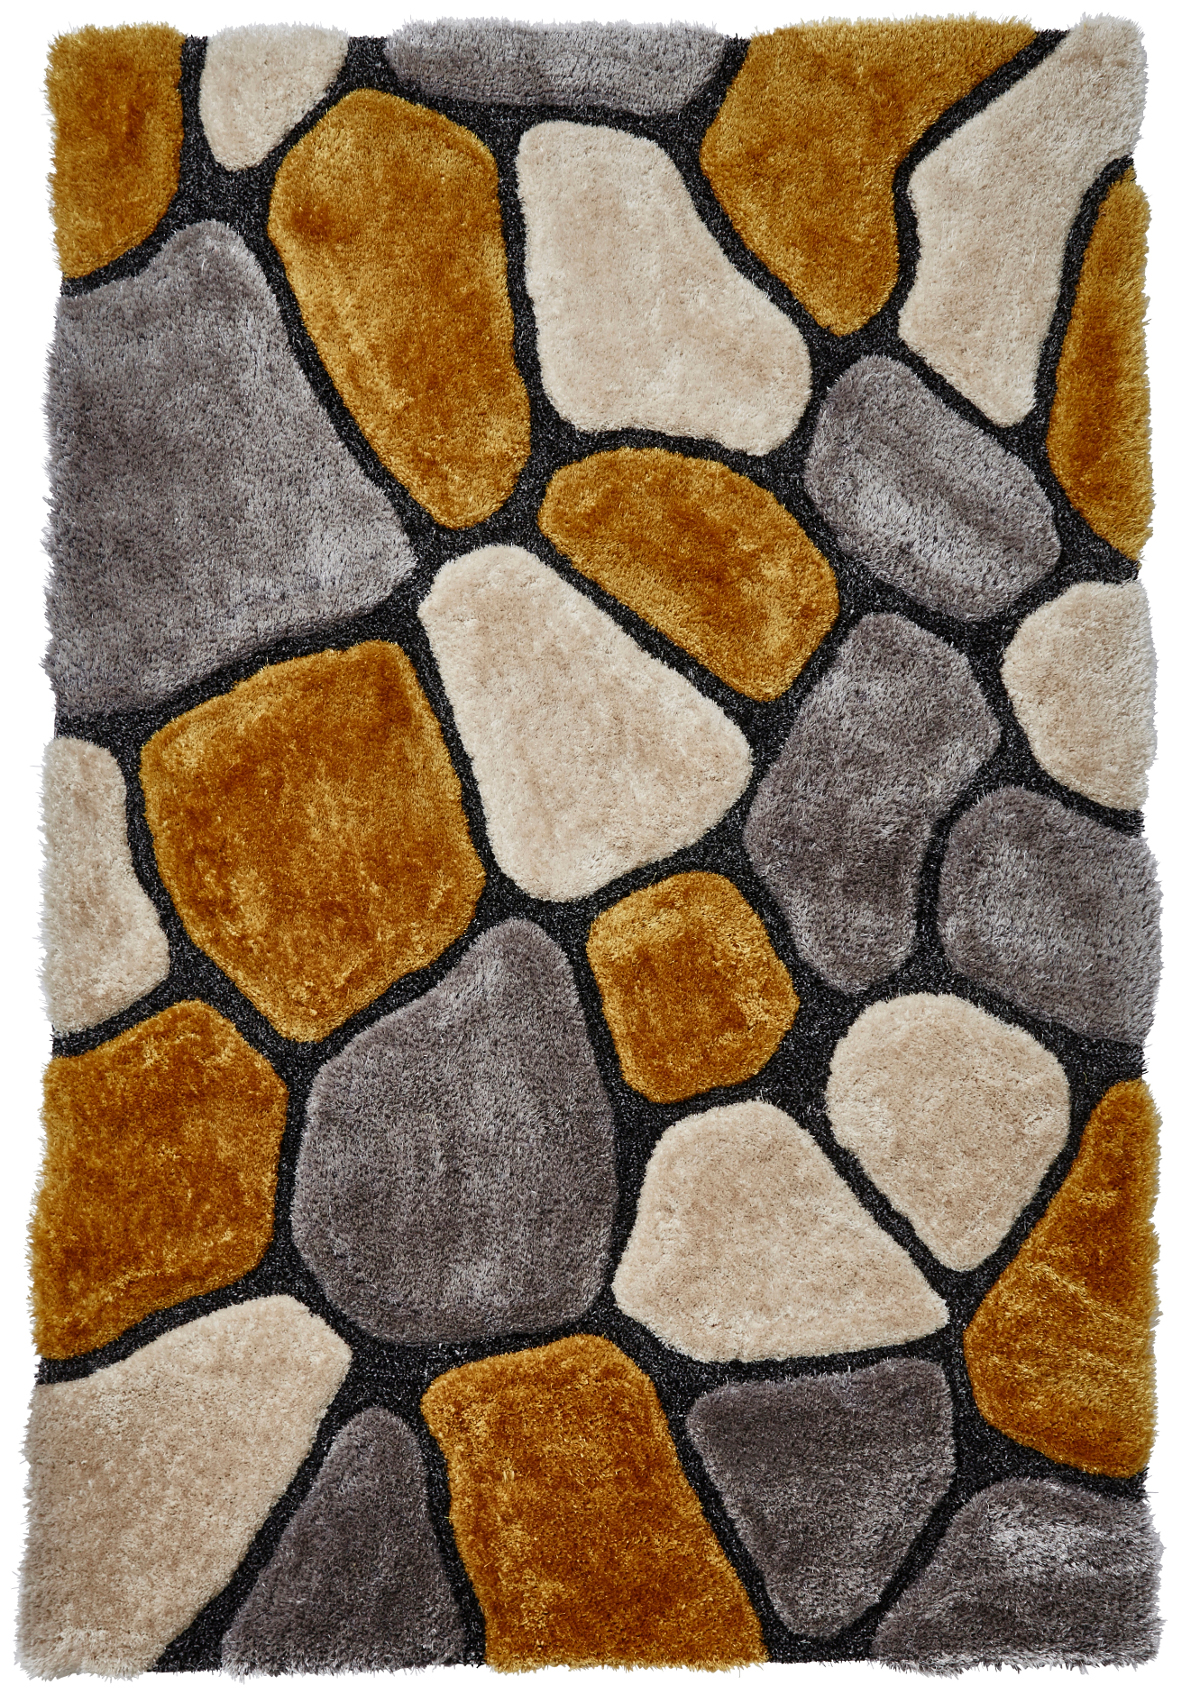 Shaggy Pile Pebble Effect Noble House Rug Large Centre